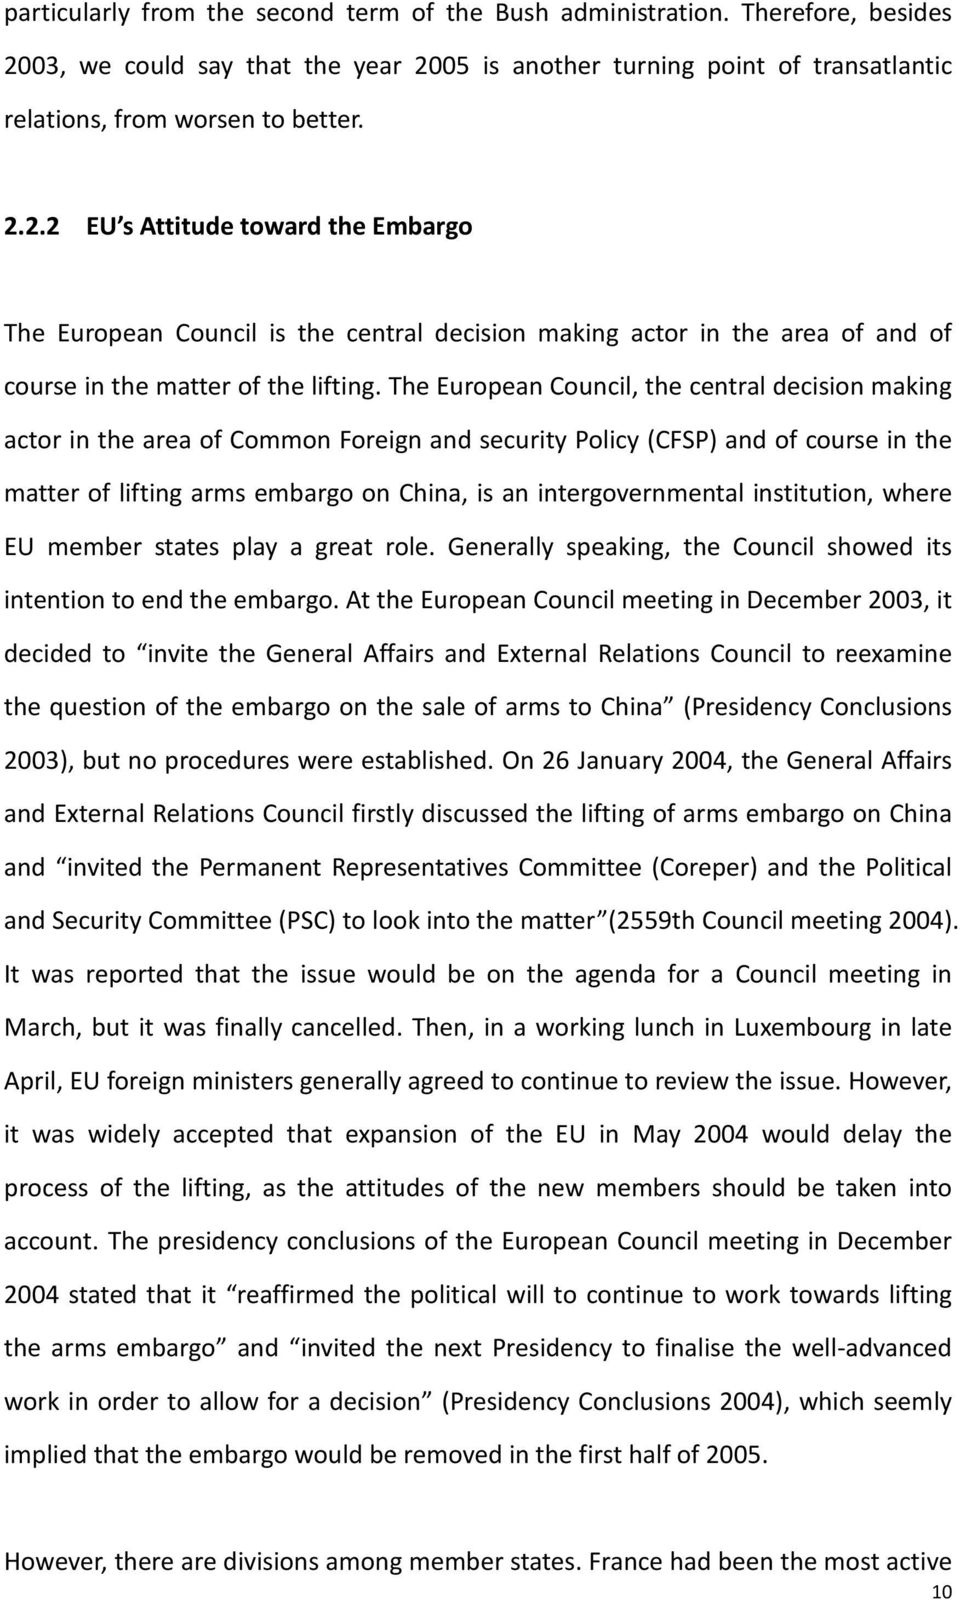 The Euroean Council, the central decision making actor in the area of Common Foreign and security Policy (CFSP) and of course in the matter of lifting arms embargo on China, is an intergovernmental